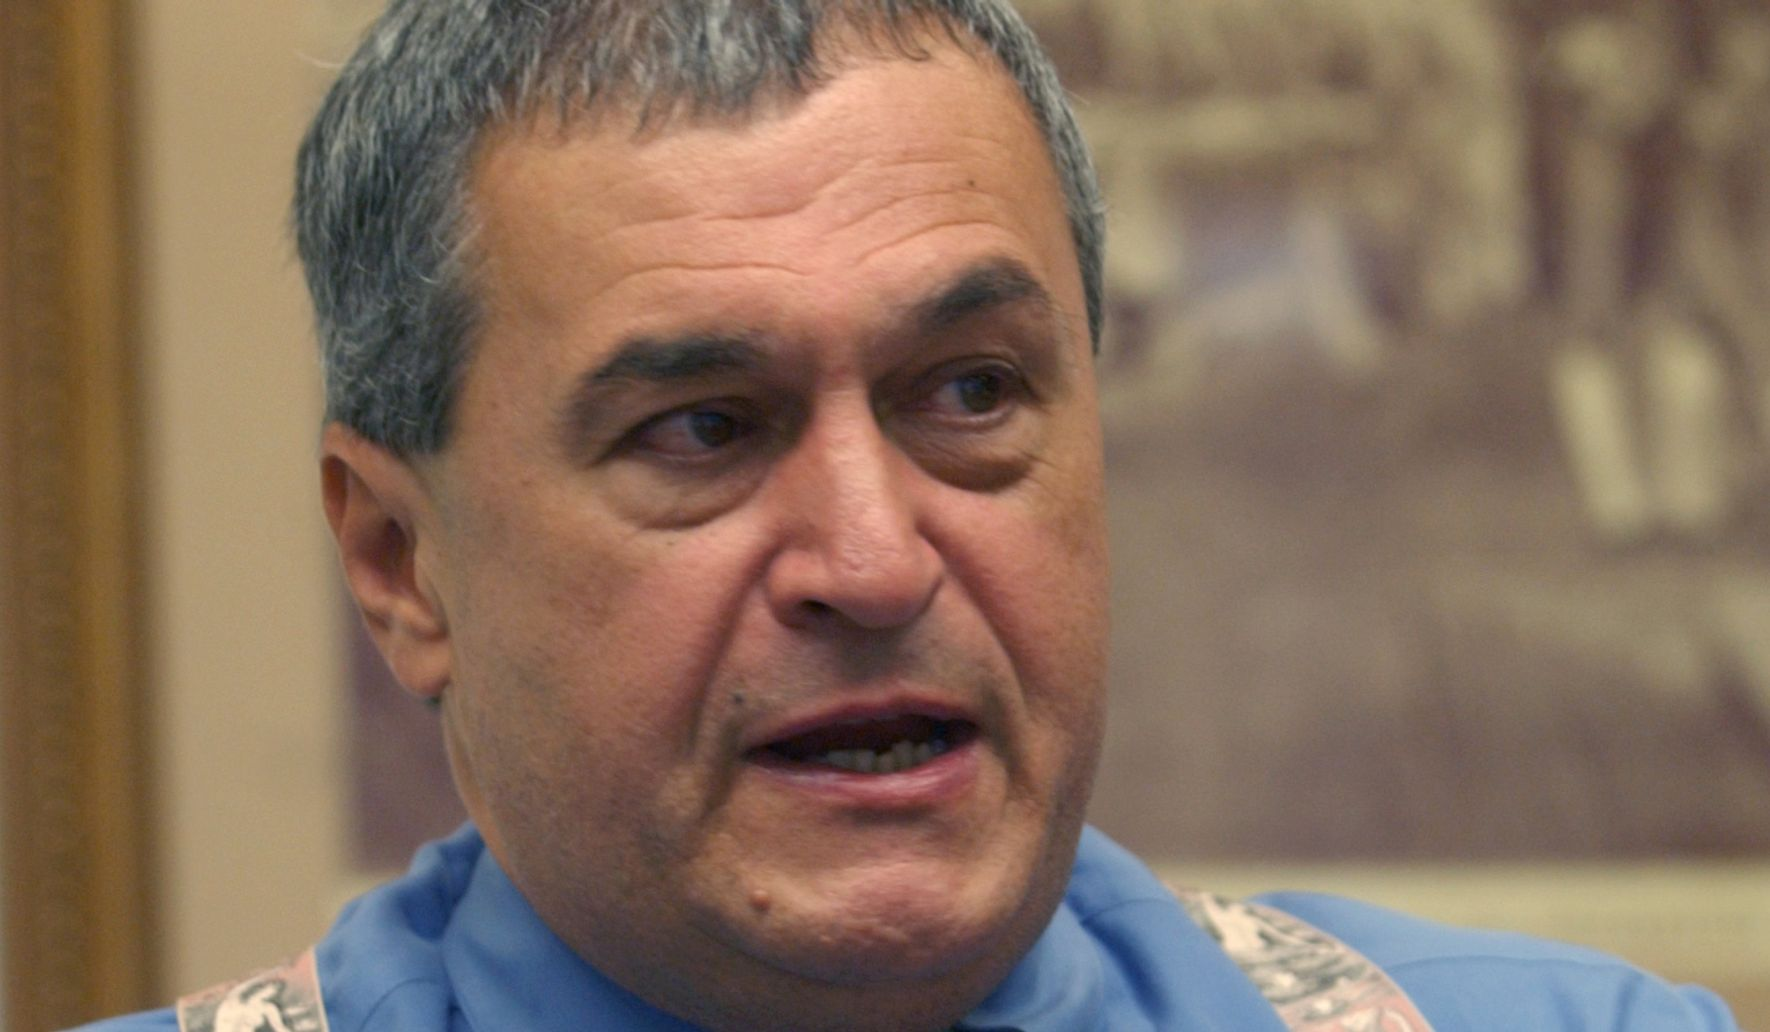 Justice Department probe of Tony Podesta, ex-lawmaker ends without charges